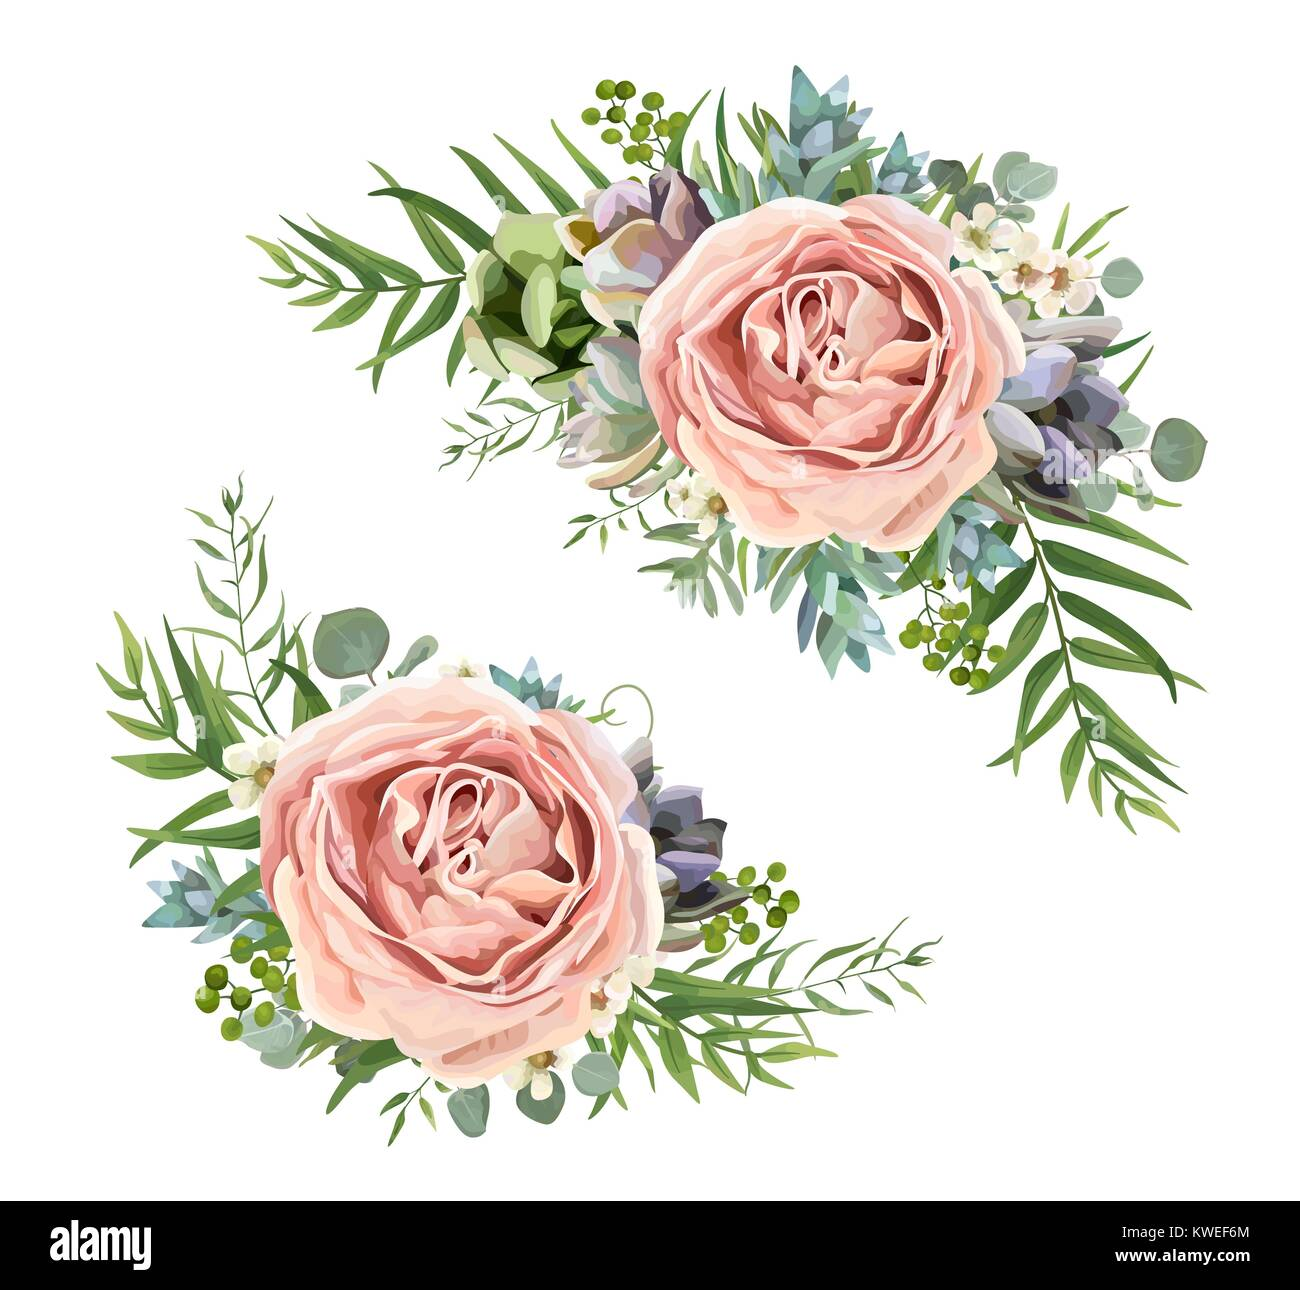 Vector floral bouquet design: garden pink peach lavender Rose wax flower, Eucalyptus branch, green fern palm leaves, - Stock Vector